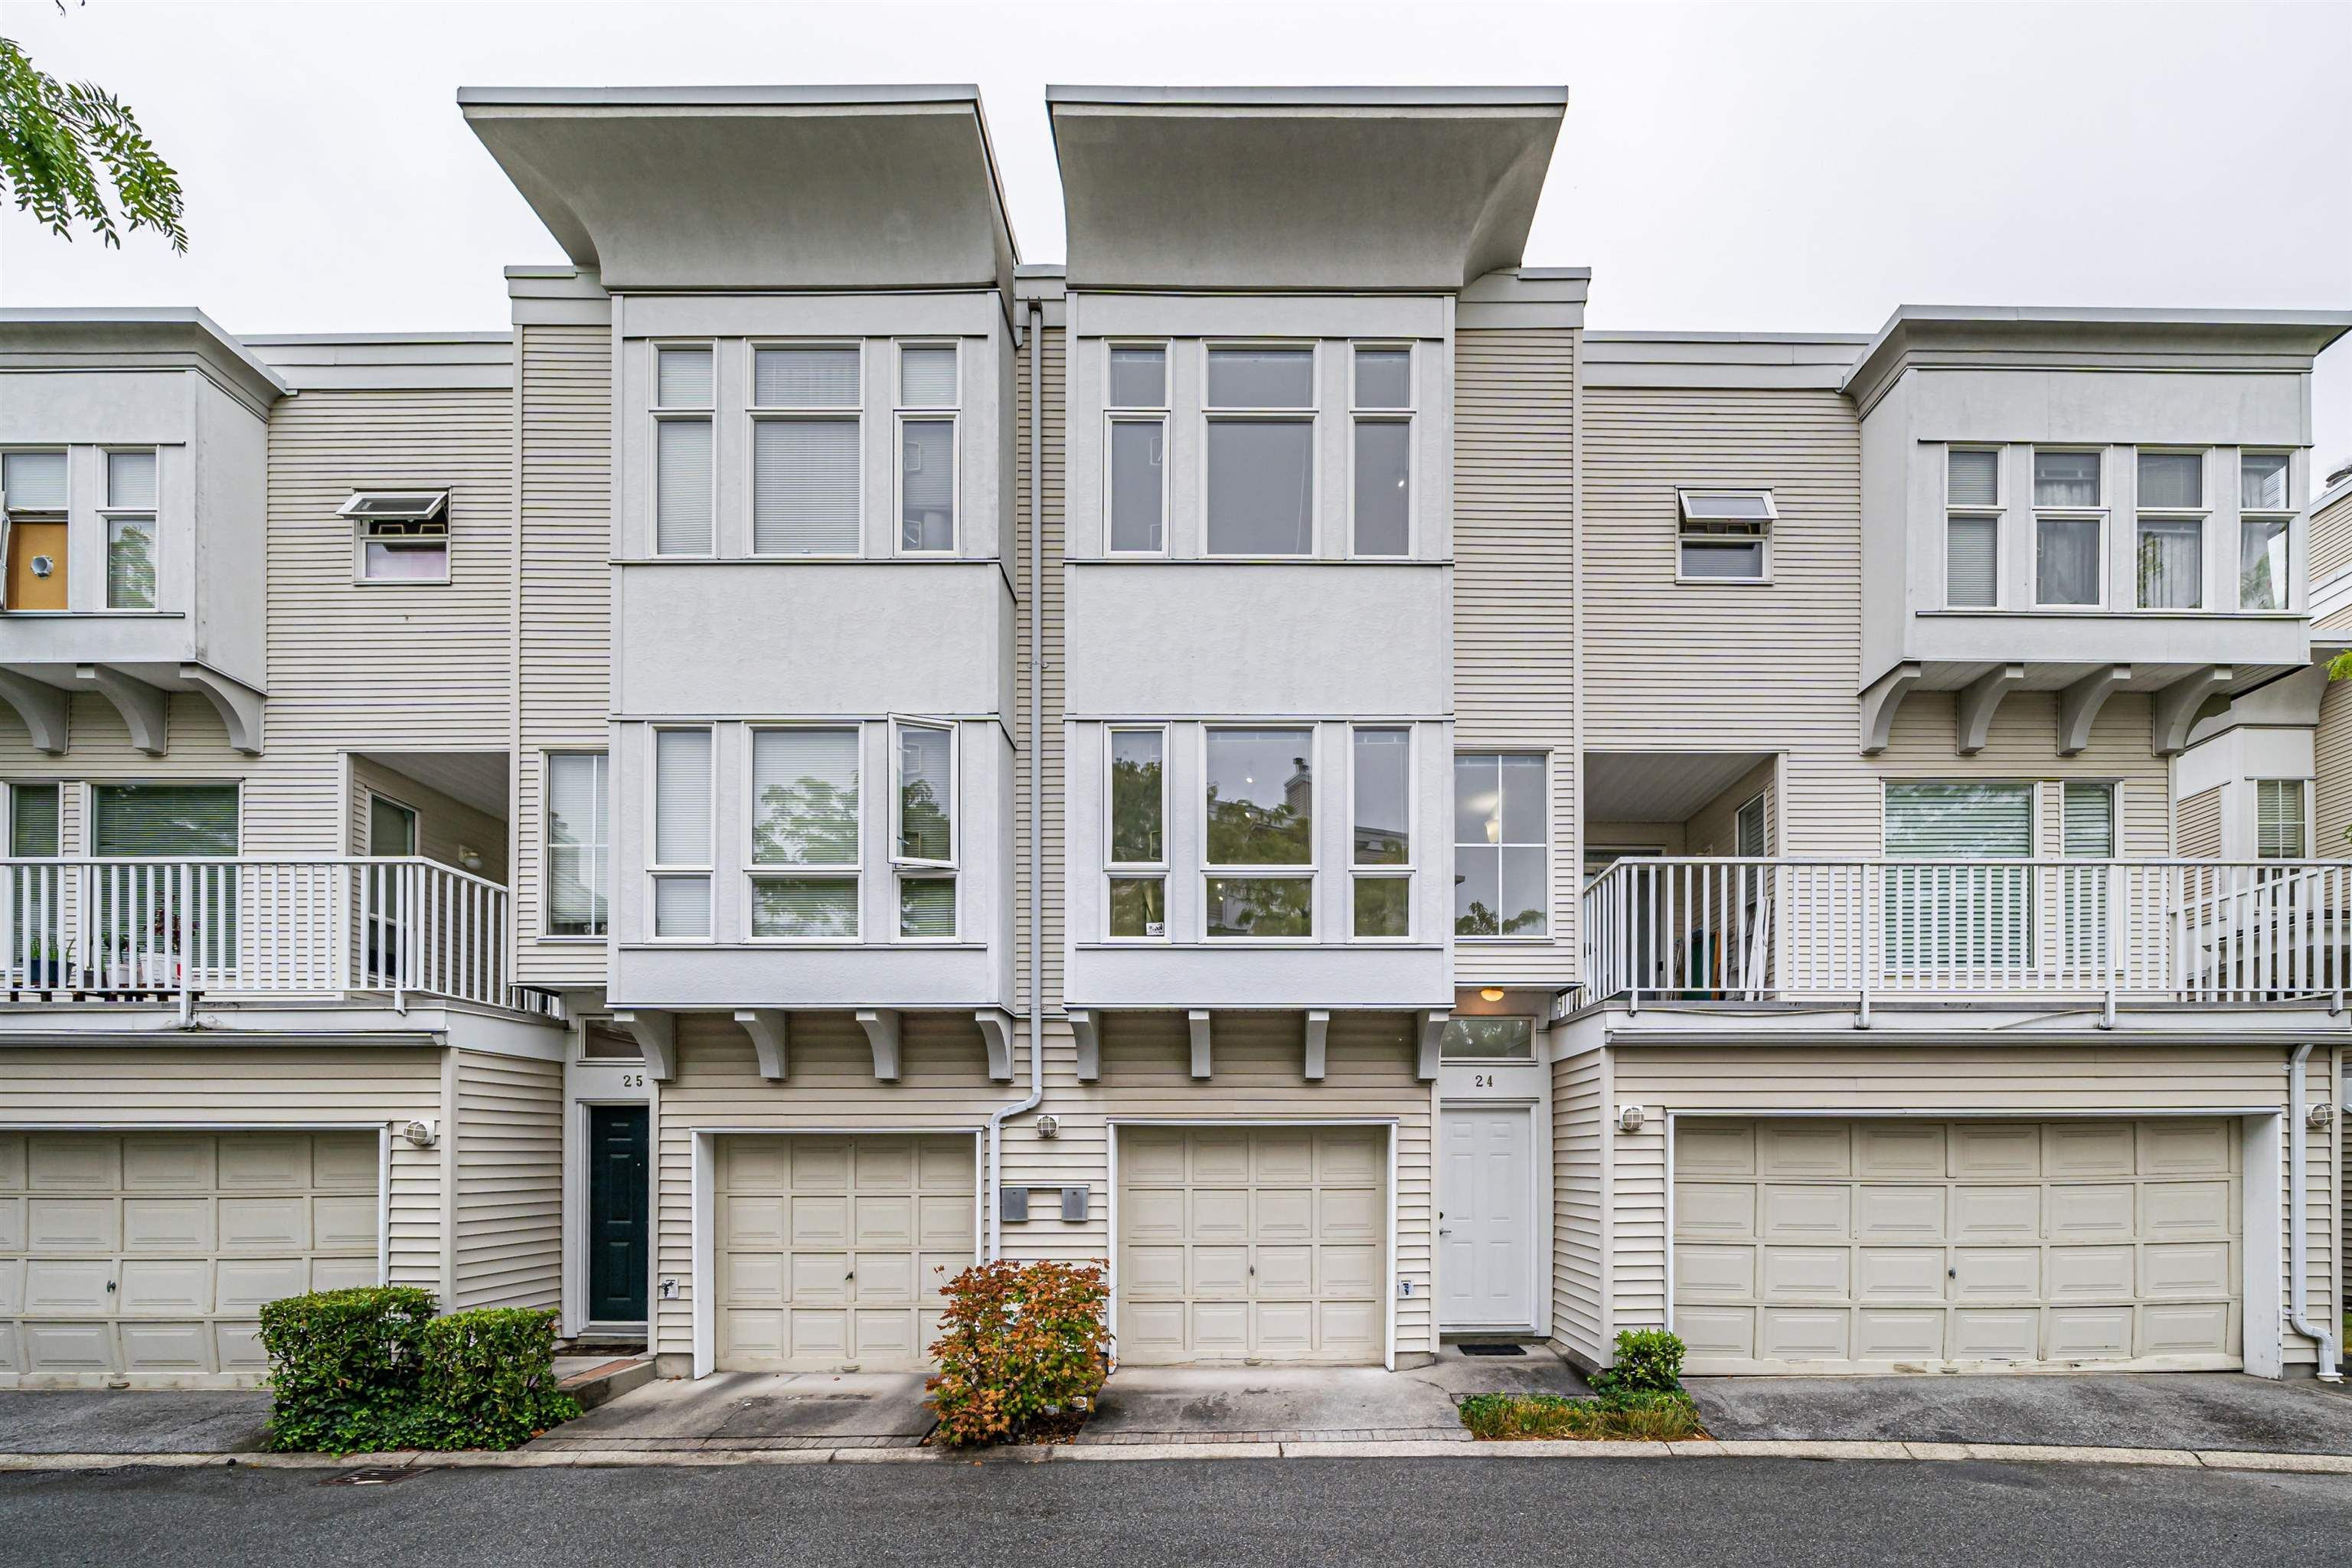 """Main Photo: 24 12331 MCNEELY Drive in Richmond: East Cambie Townhouse for sale in """"Sausulito"""" : MLS®# R2611110"""